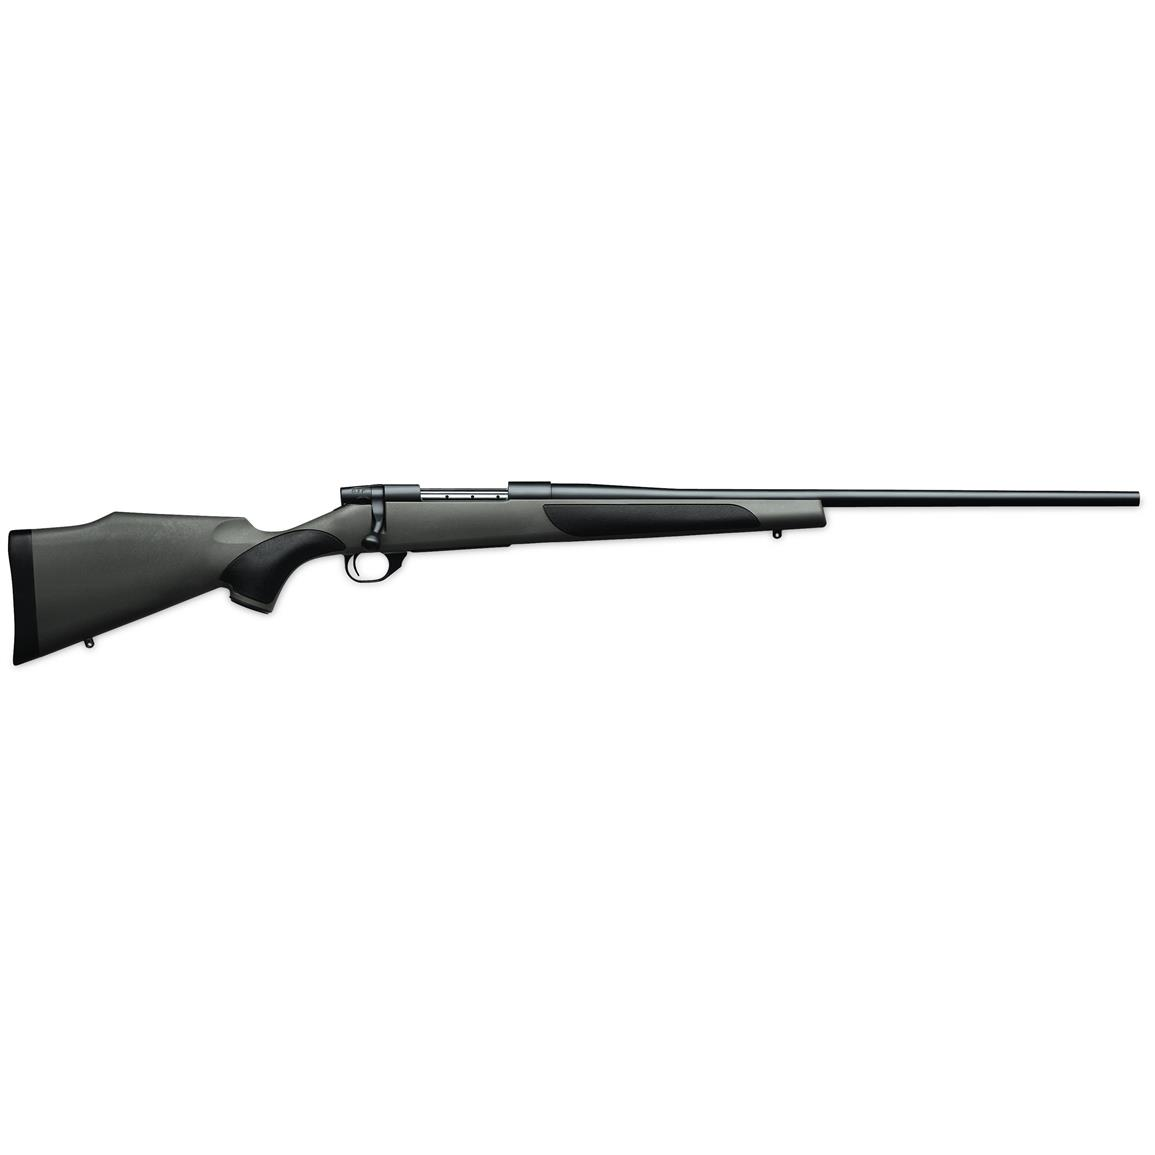 Weatherby Vanguard 2 Synthetic, Bolt Action, .25-06 Remington, Centerfire, VGT256RR4O, 747115420322, Blued Finish